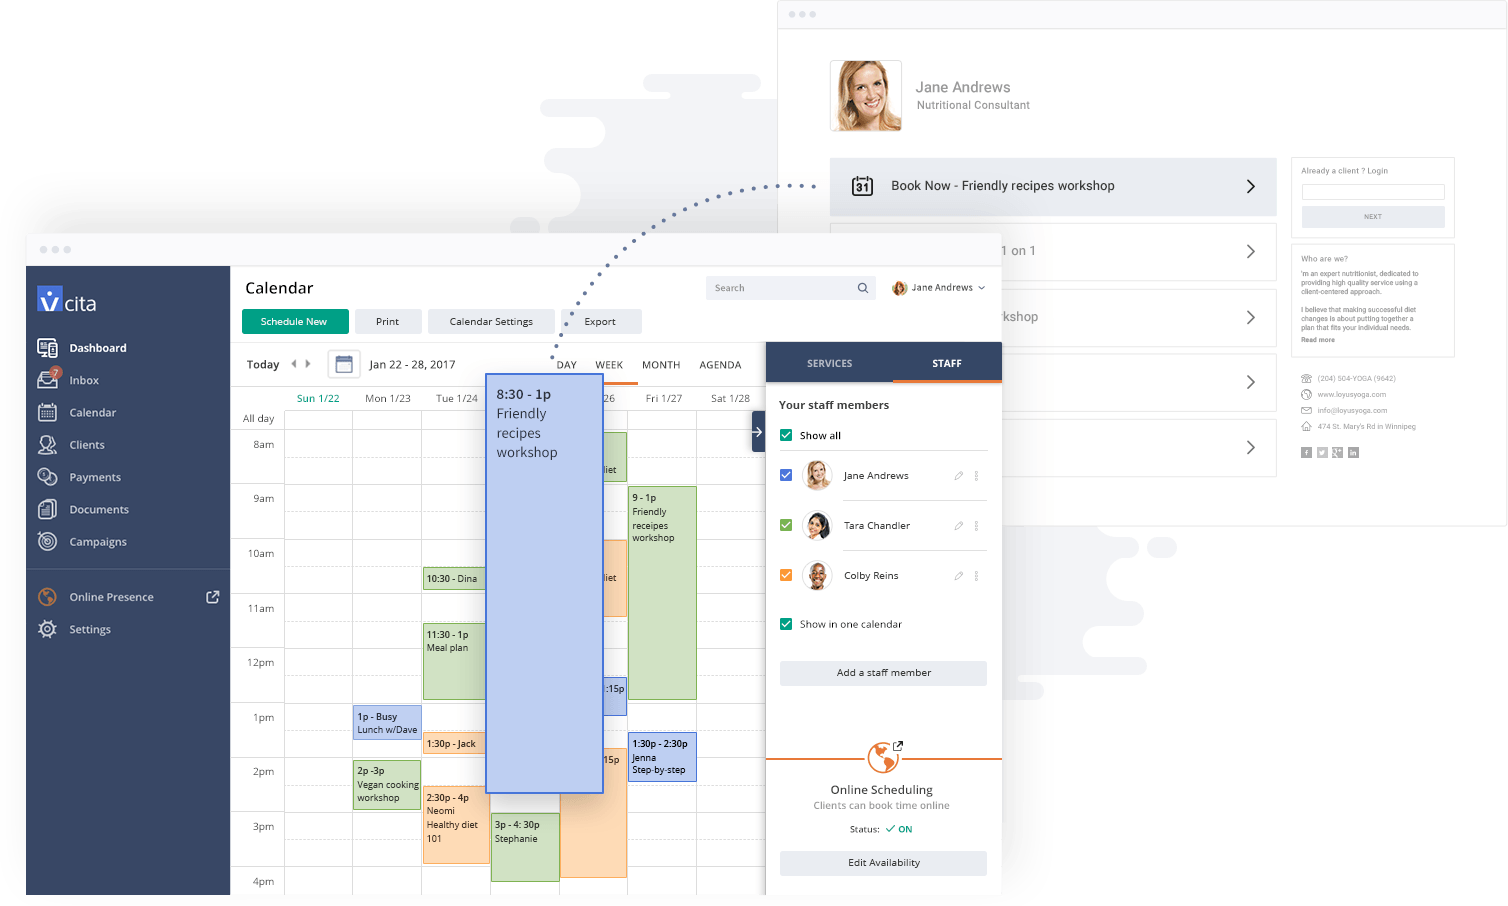 vCita Demo - Create Services and Events and Let Users Book Online